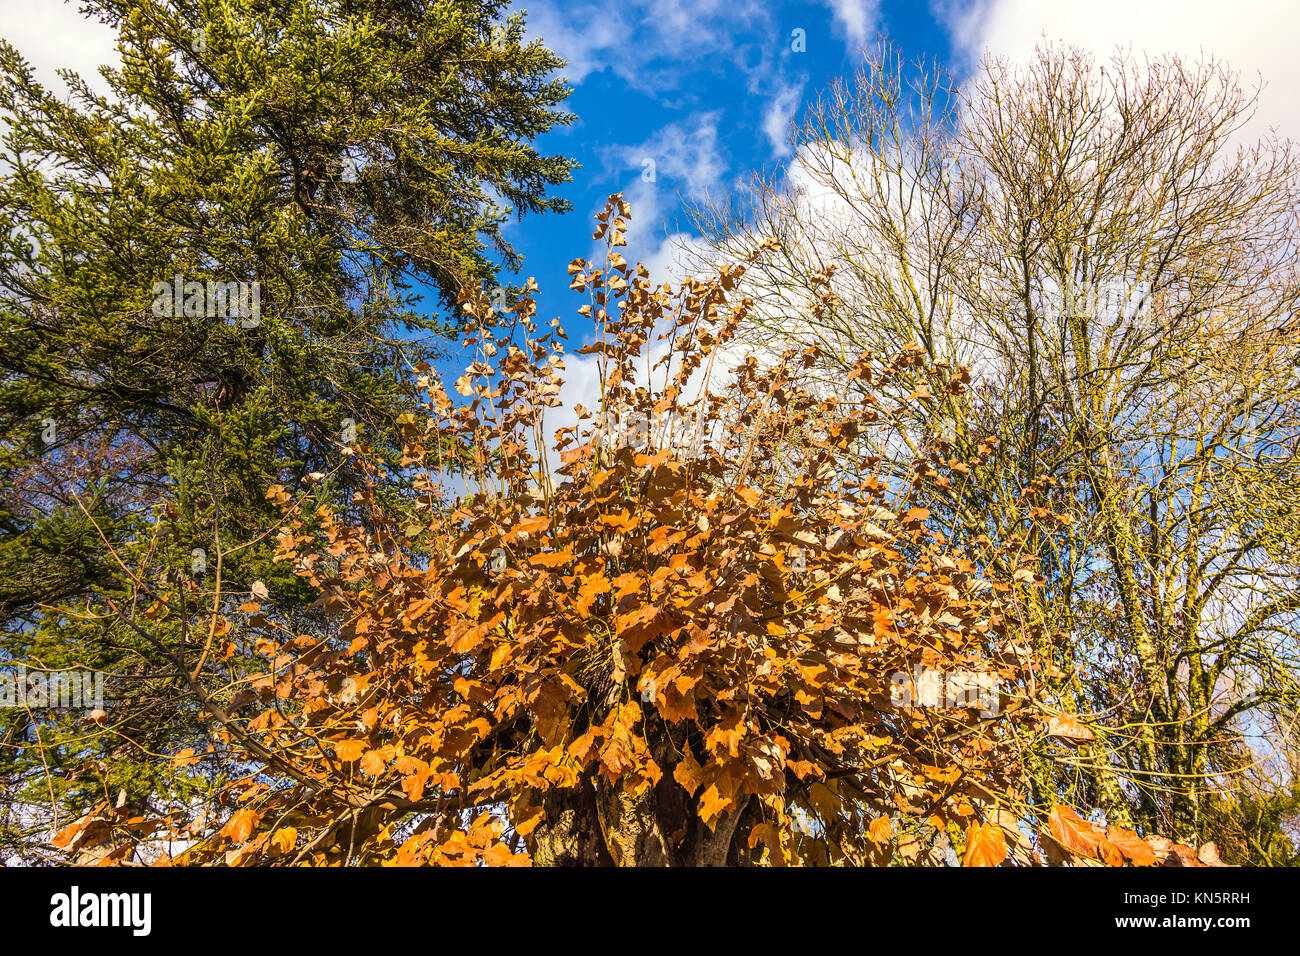 Autumn leaves on pollarded Lime tree. - Stock Image